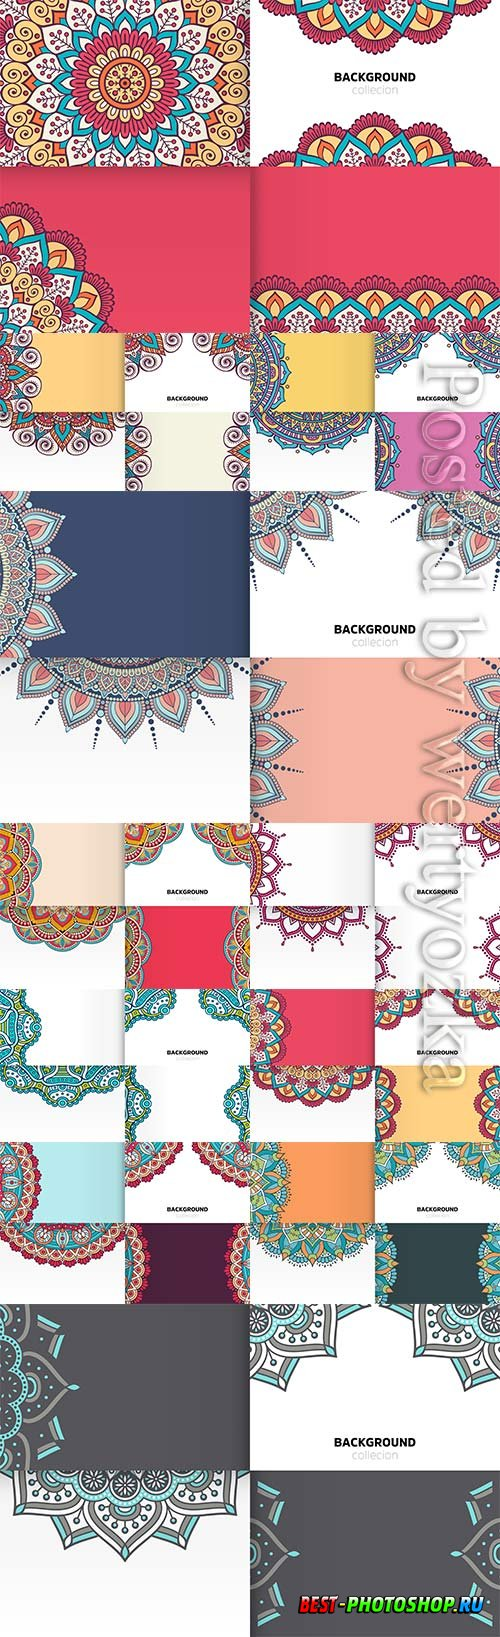 Background vector template in ethnic style